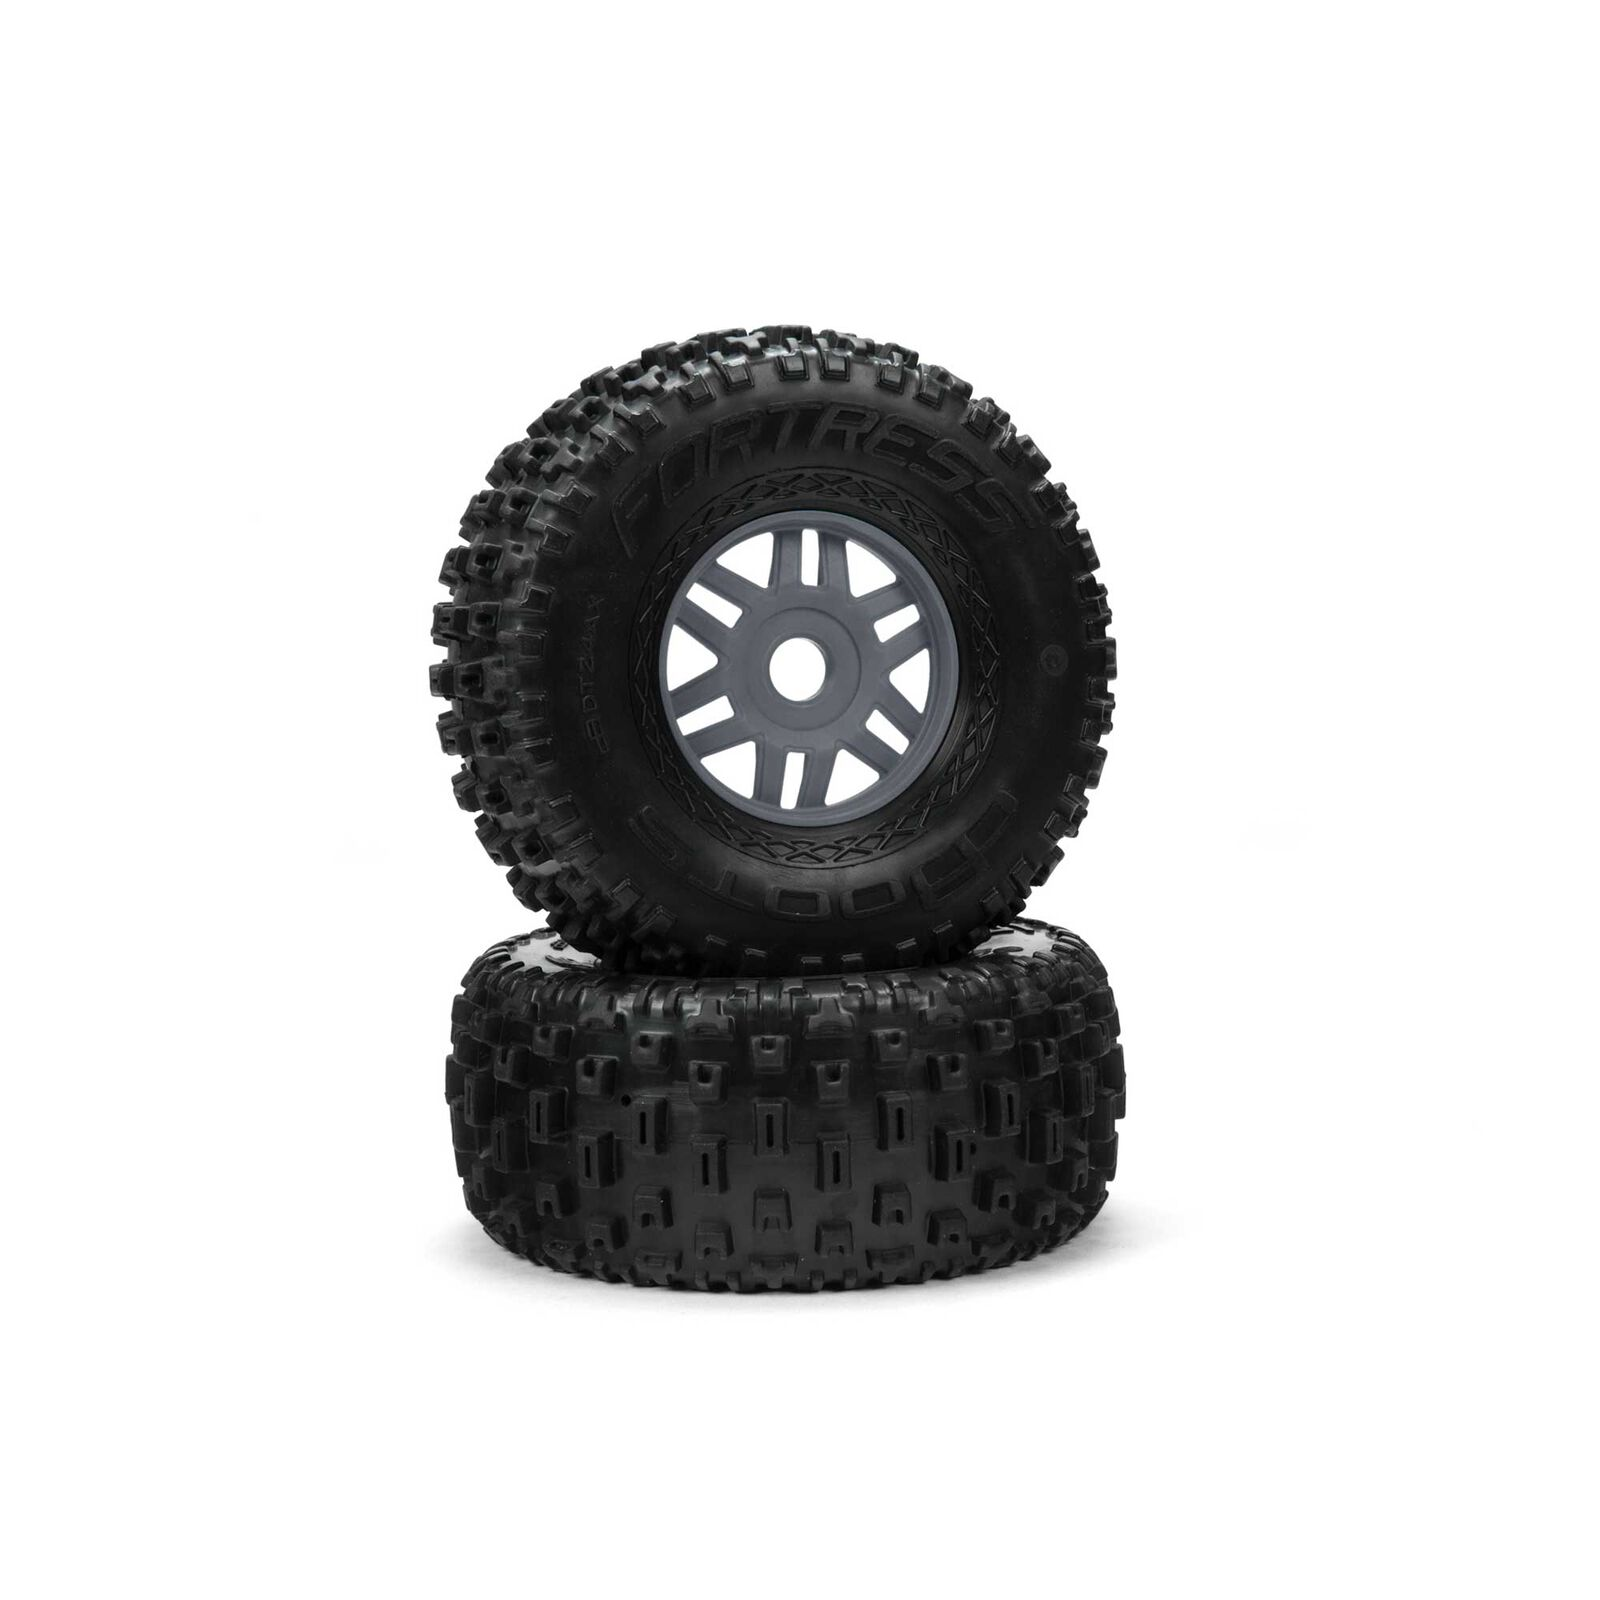 1/8 dBoots Fortress Front/Rear 2.4/3.3 Pre-Mounted Tires, 17mm Hex, Gunmetal (2)